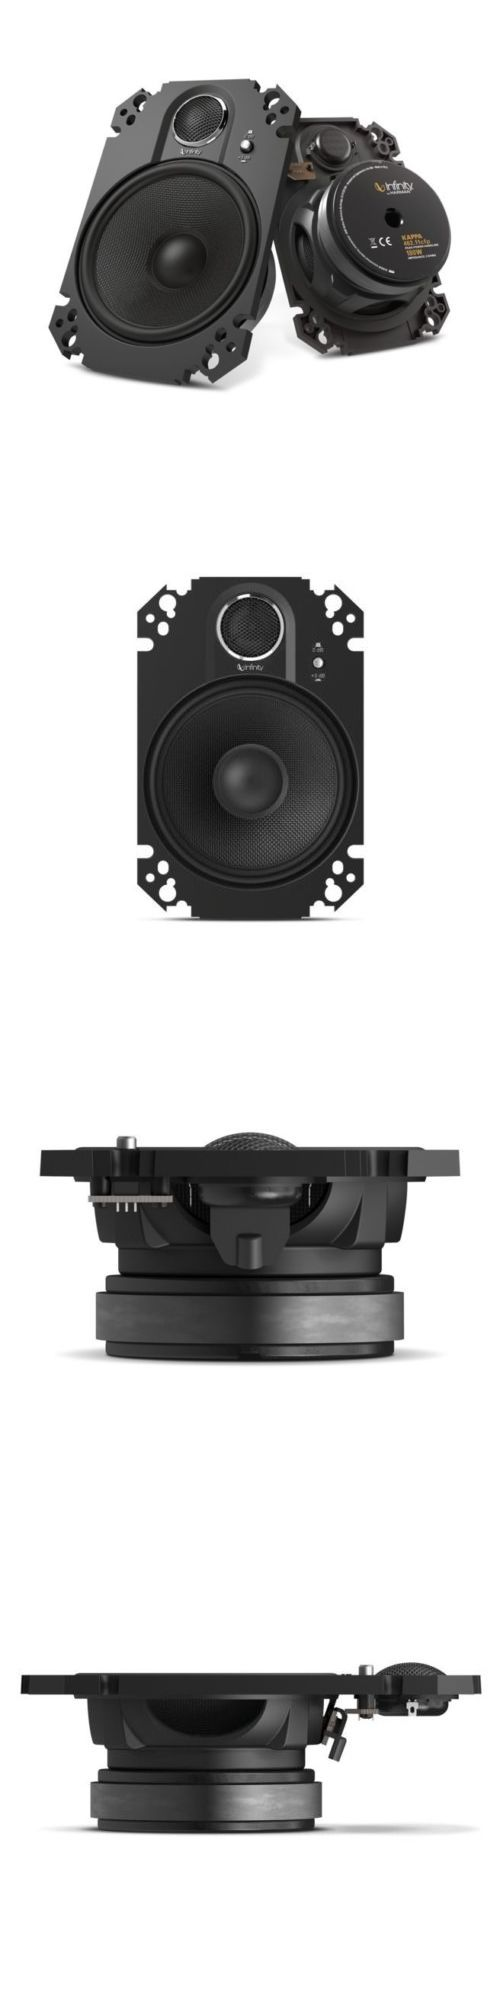 Car Speakers and Speaker Systems: Infinity Kappa 462.11Cfp 4 X 6 2-Way Coaxial Car Speakers New Pair Kappa 46211 BUY IT NOW ONLY: $92.51